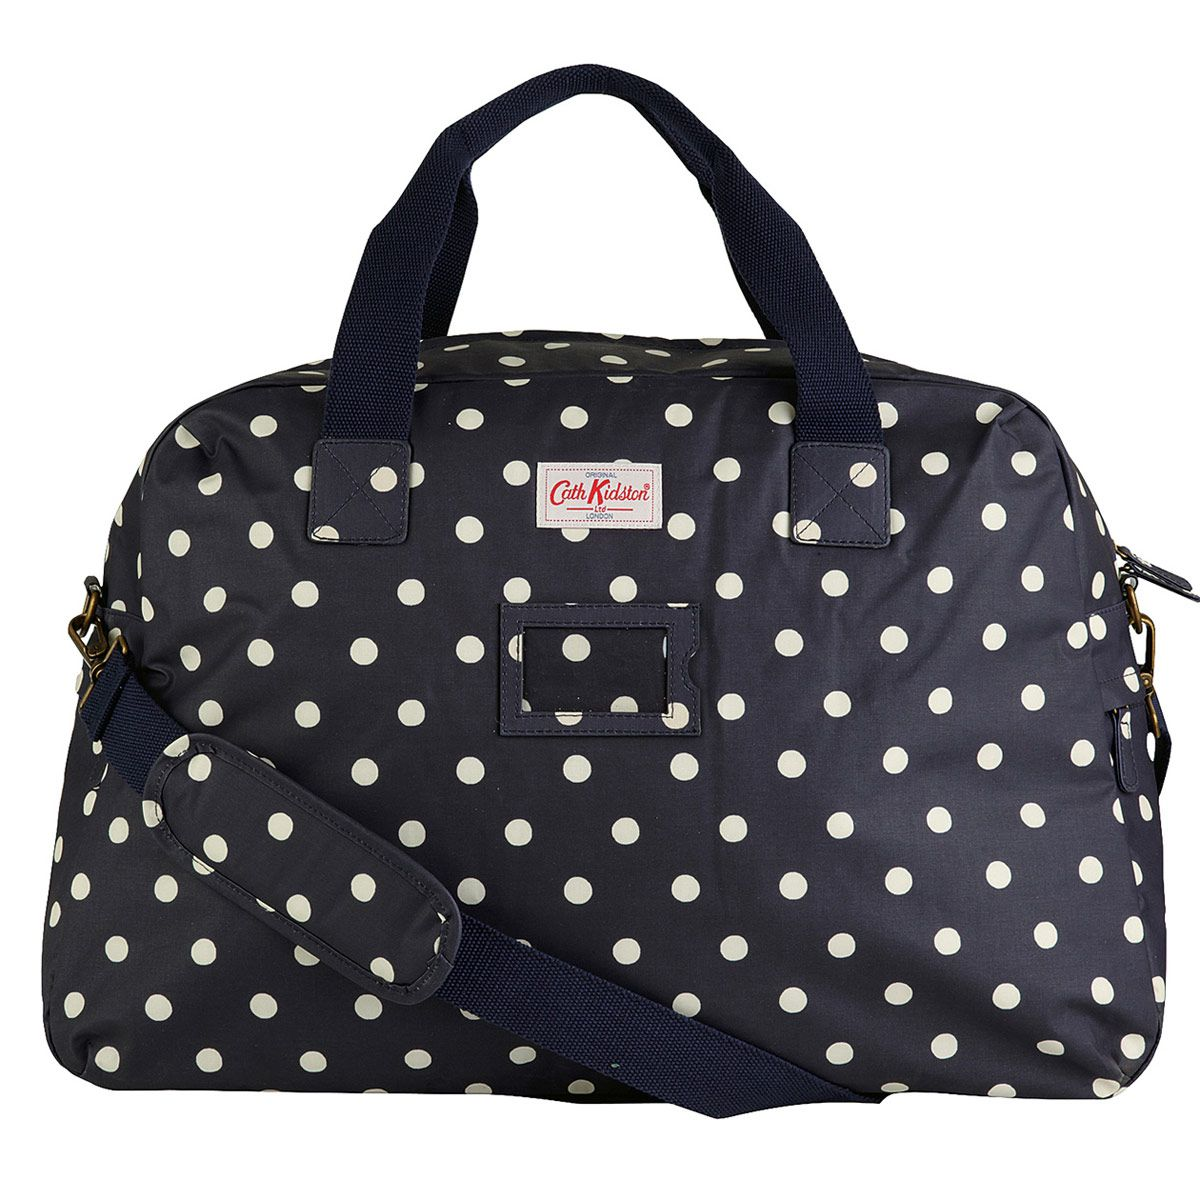 Spot Navy Travel Bag Holiday Packing Becomes A Joy Cath Kidston Bianca Top Leux Studio L